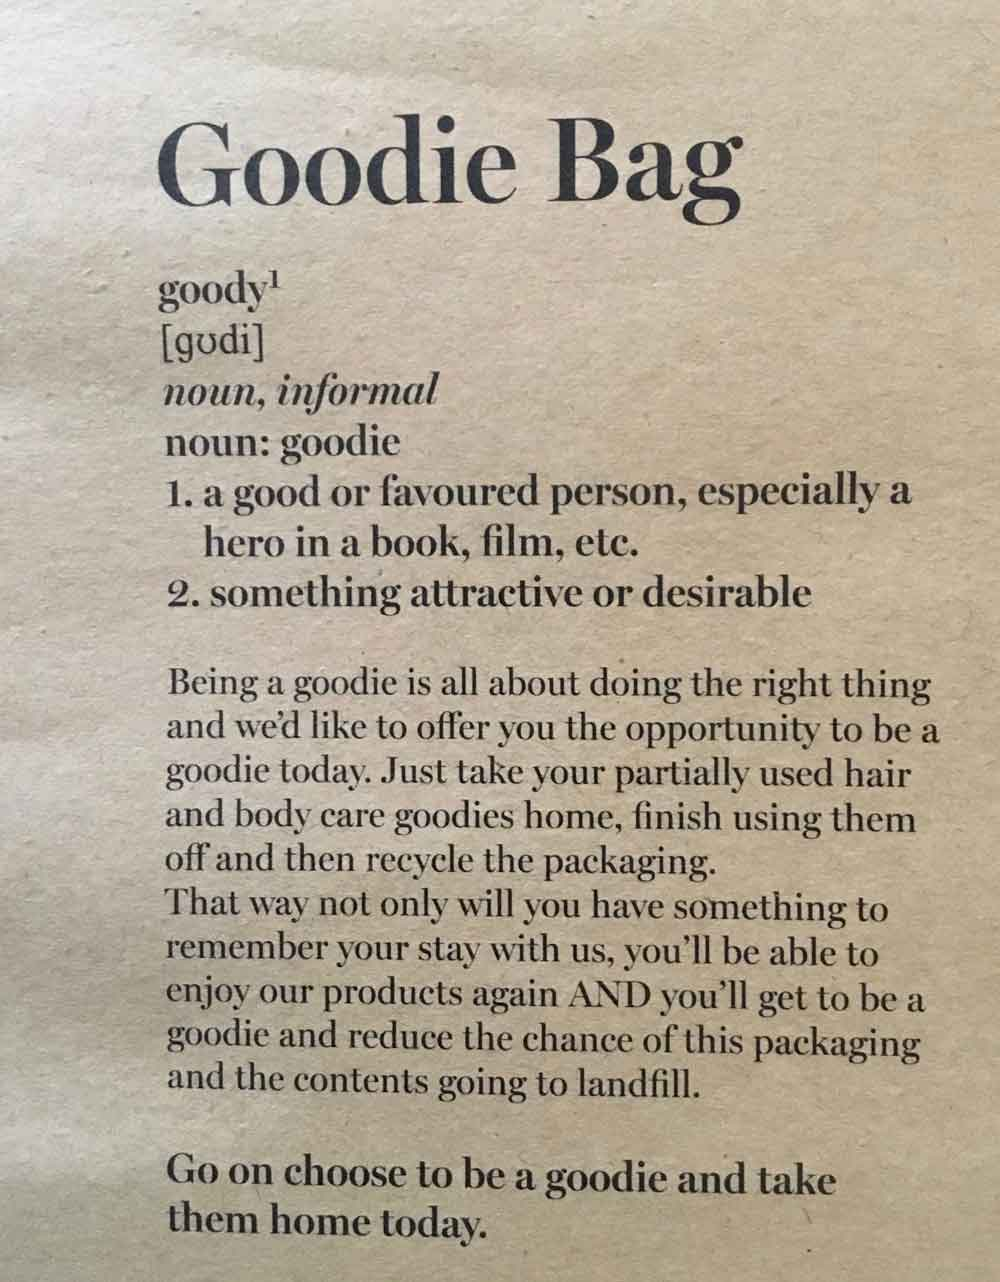 Goodie Bag